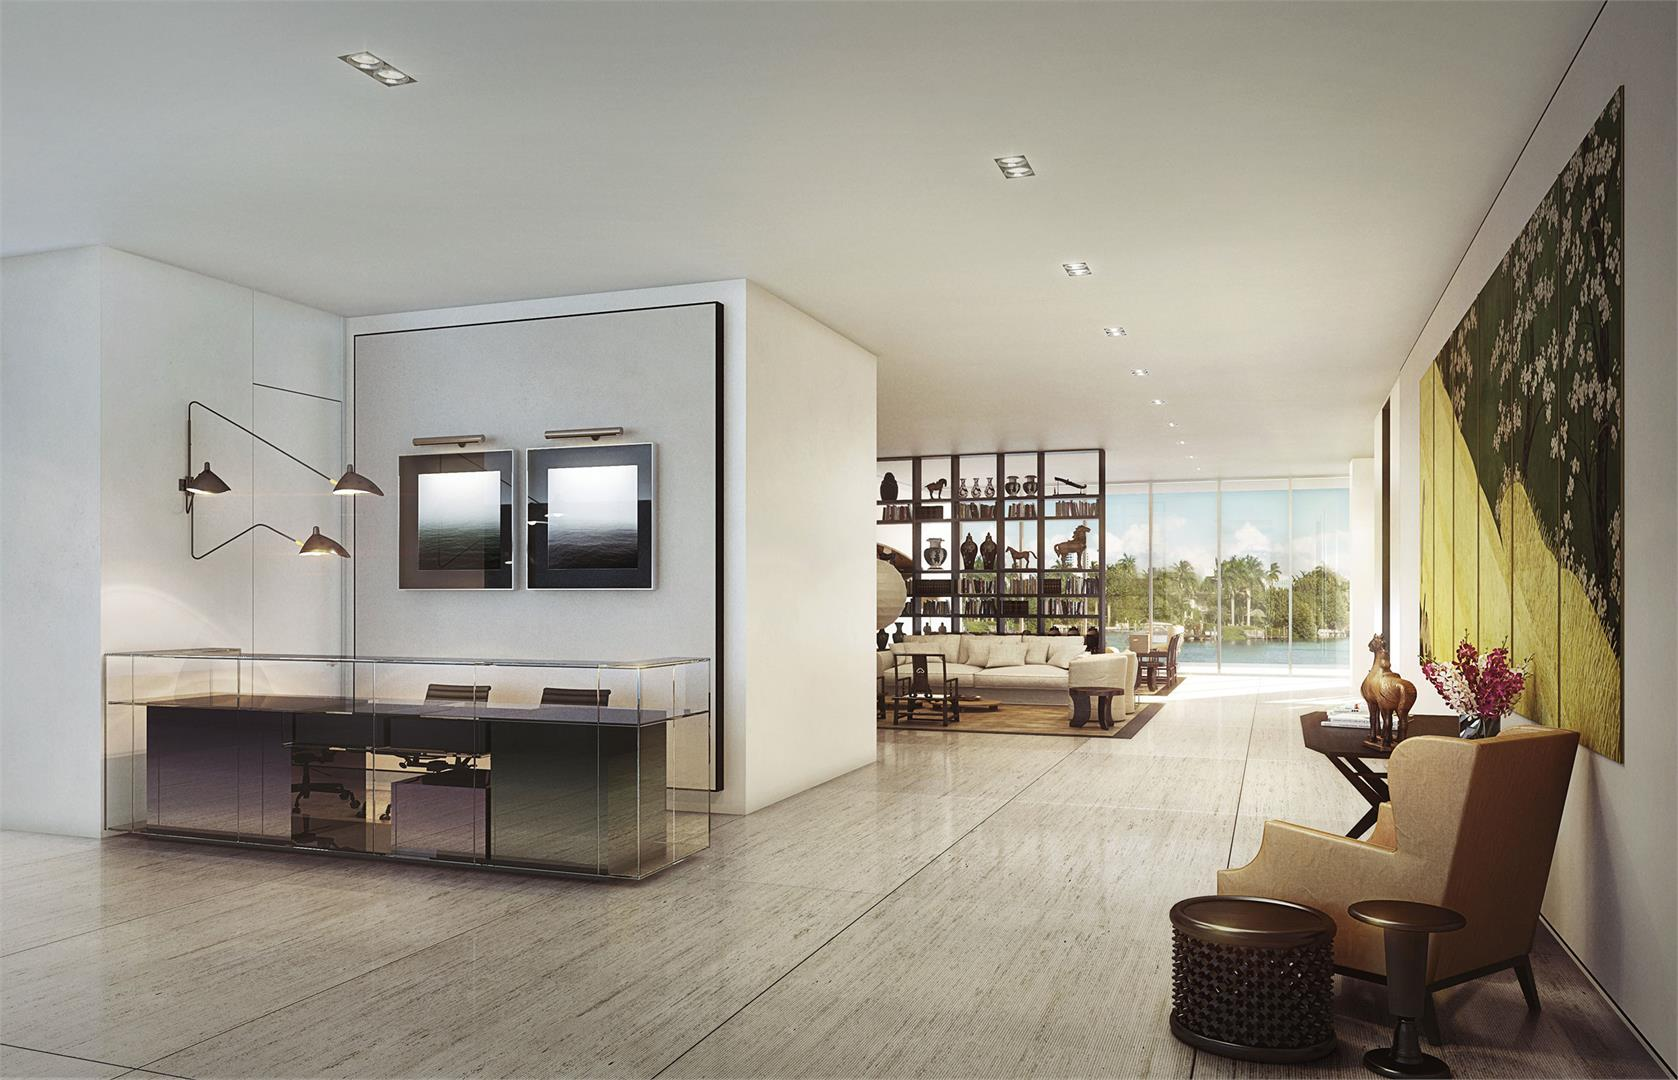 The Ritz-Carlton Residences - Image 11